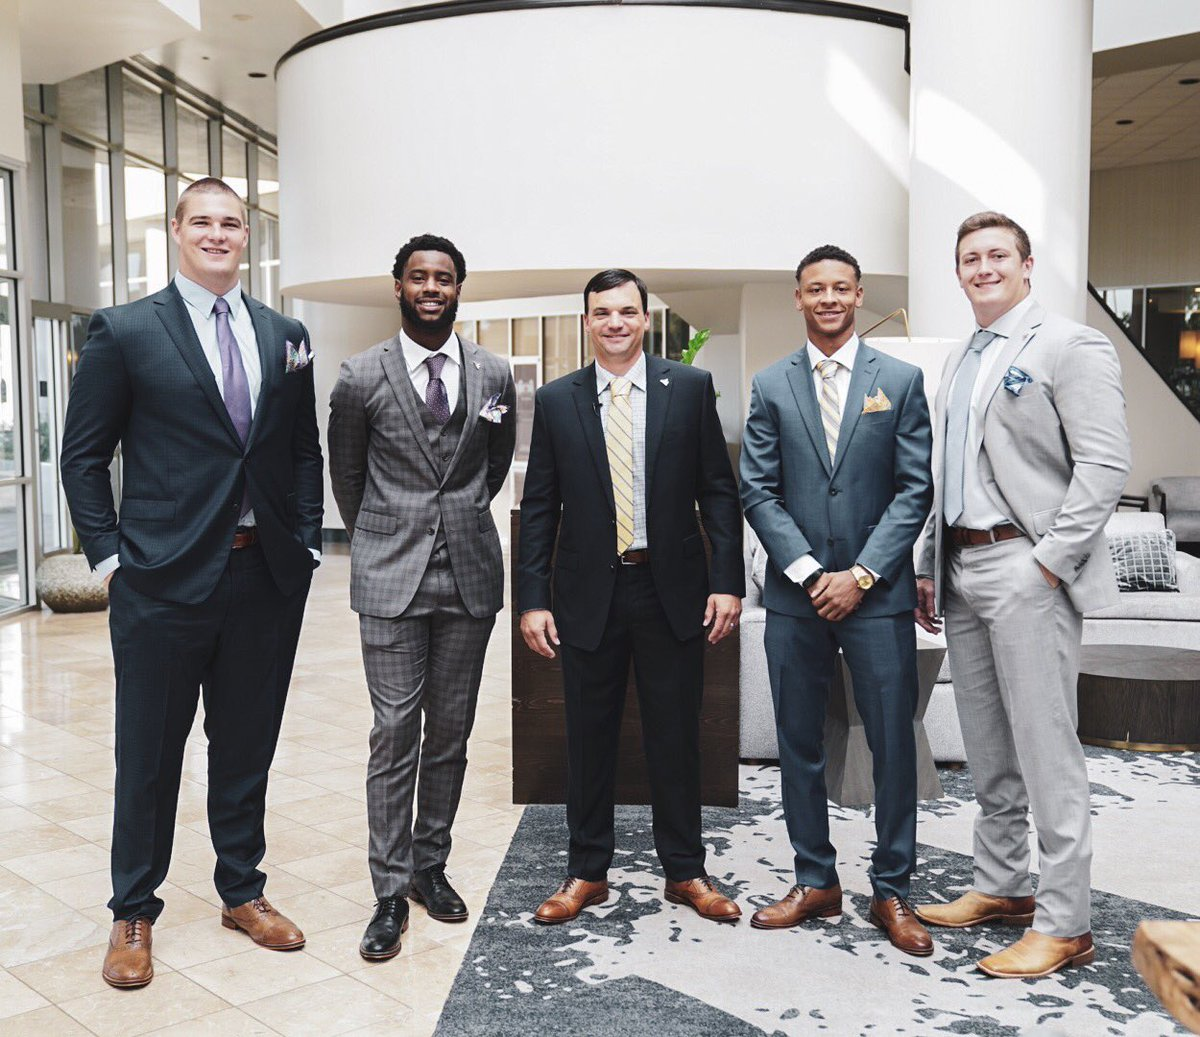 Big 12 Media Day Two featuring WVU